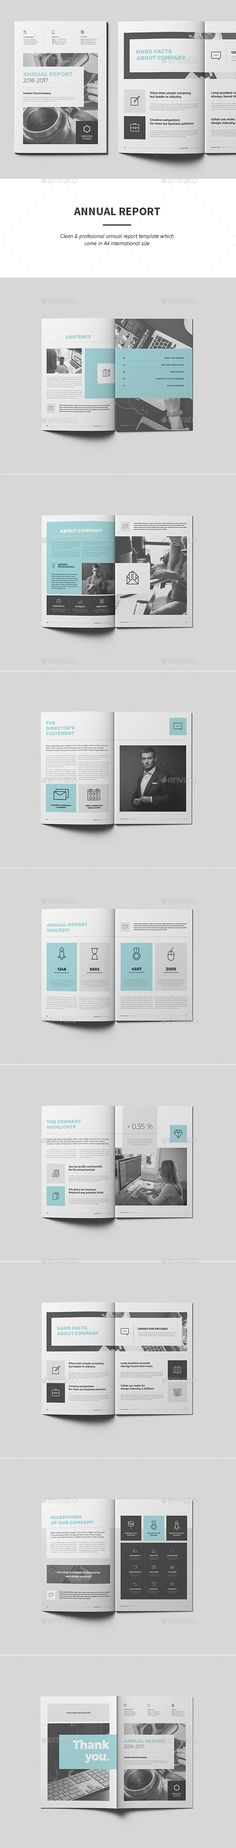 Annual Report by GreenSocks https://graphicriver.net/item/annual-report/18884167?ref=fisihsani